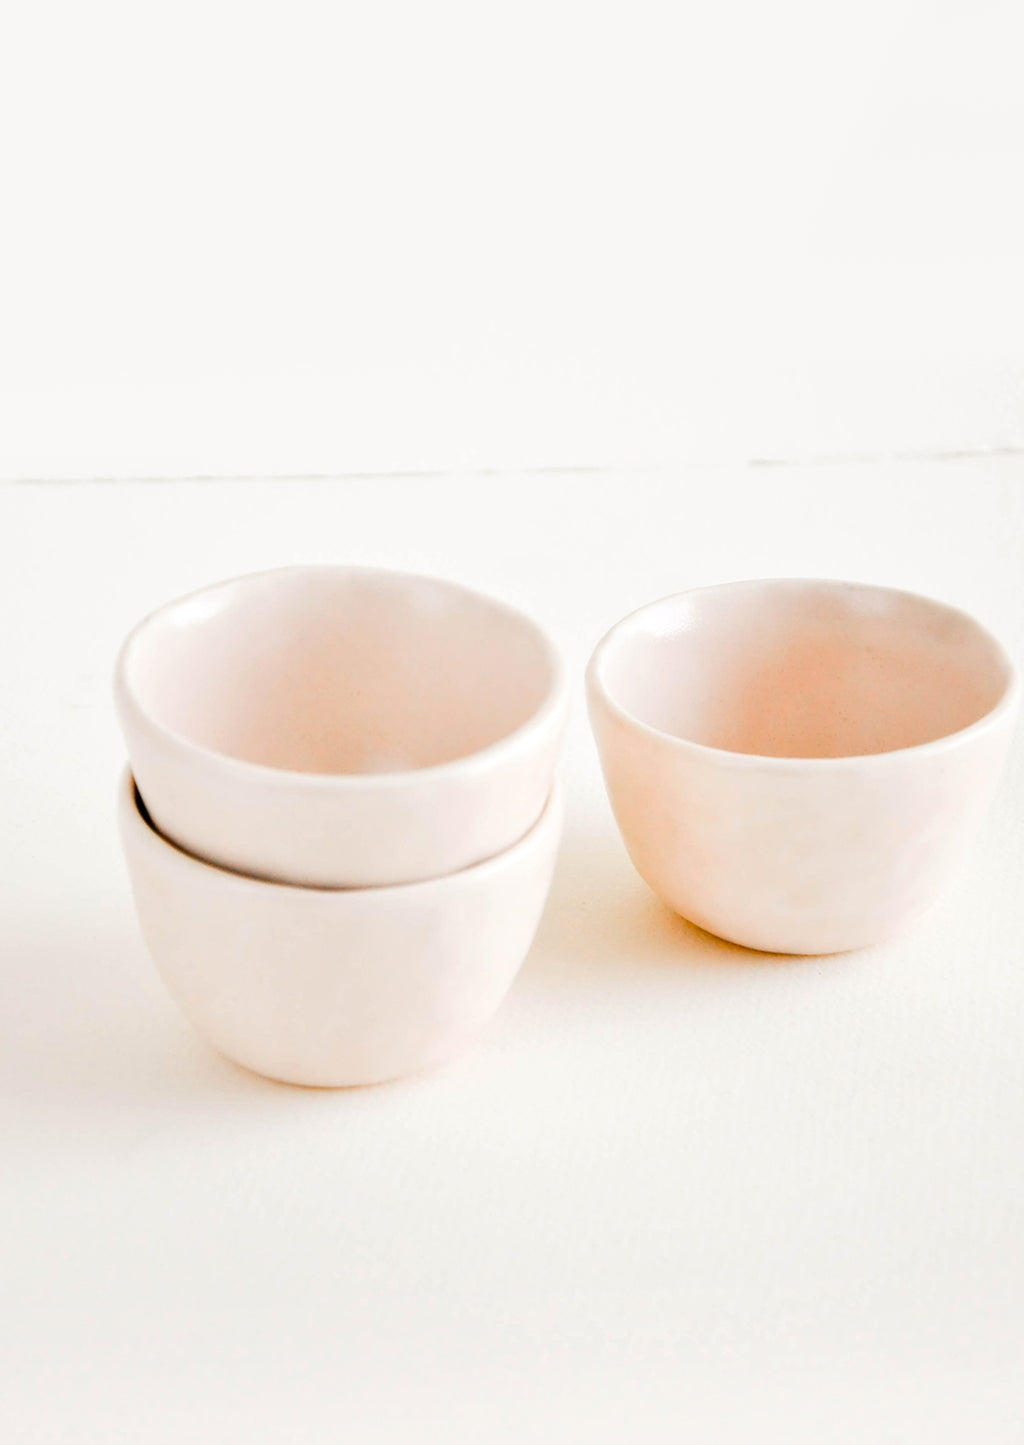 Summer Sweet: Little Hand Built Mini Ceramic Bowls in Light Pink - LEIF